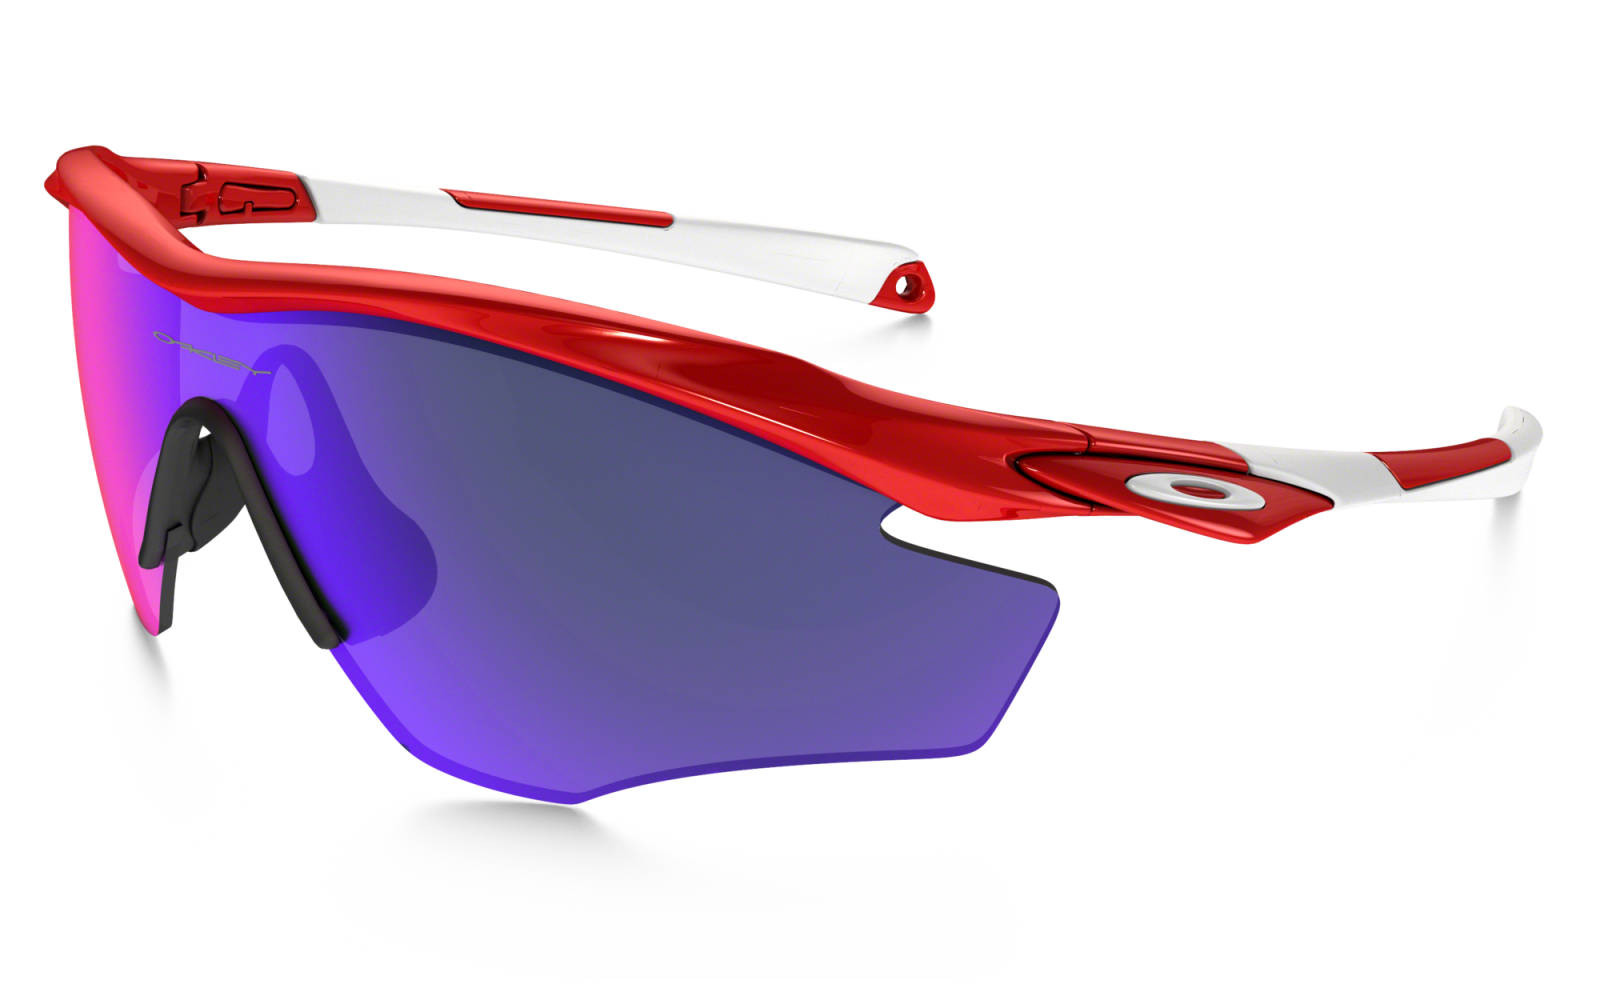 Oakley M2 Frame - Redline Rood / Positive Red Iridium